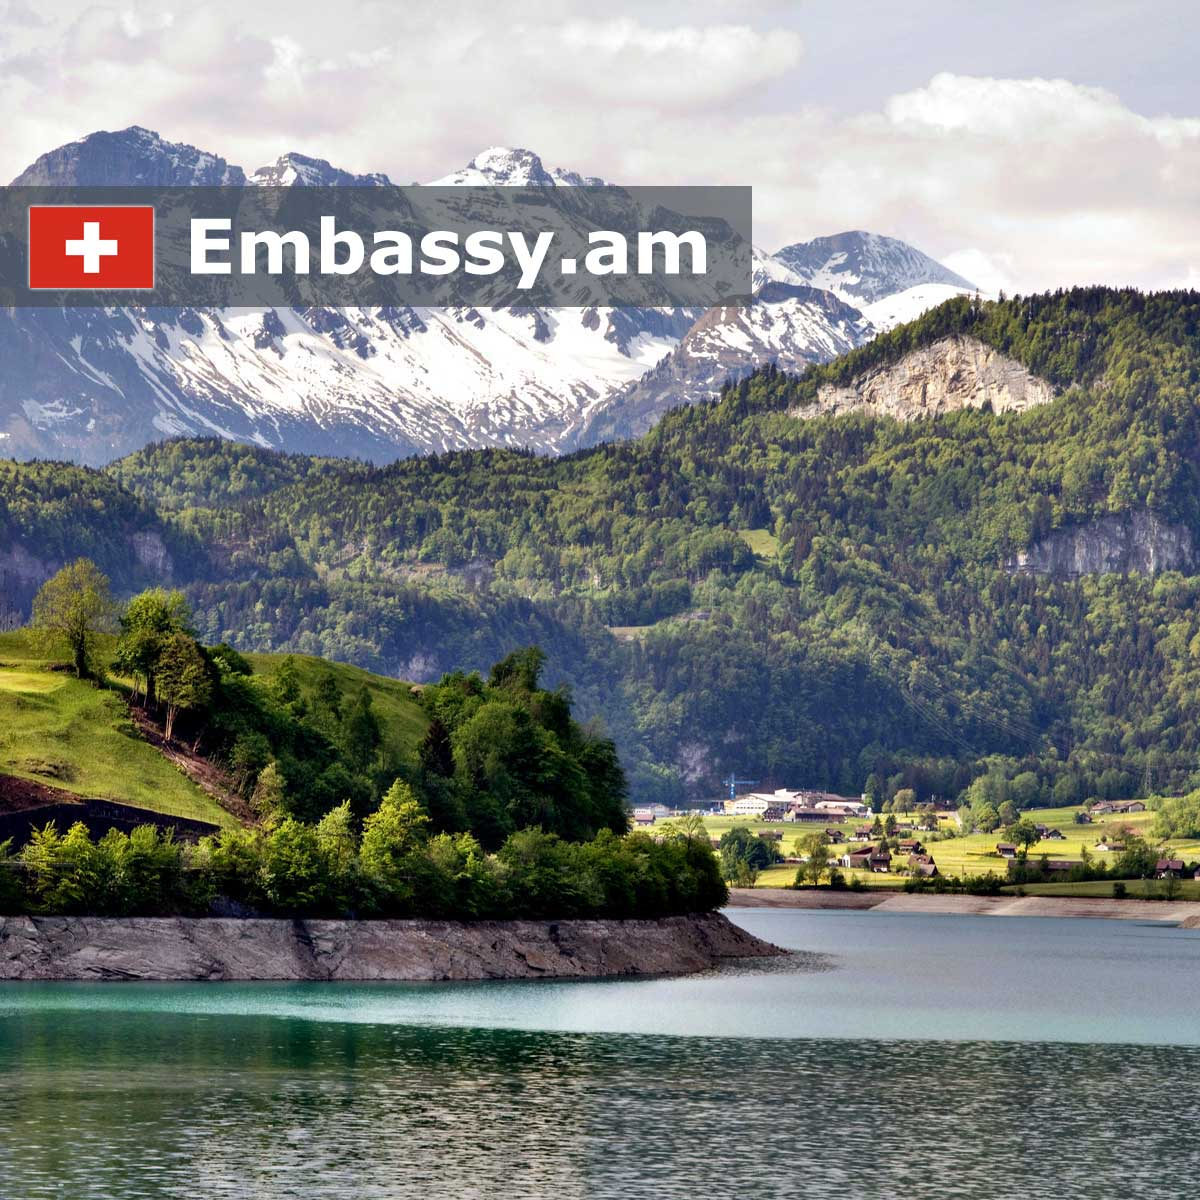 Interlaken - Hotels in Switzerland - Embassy.am